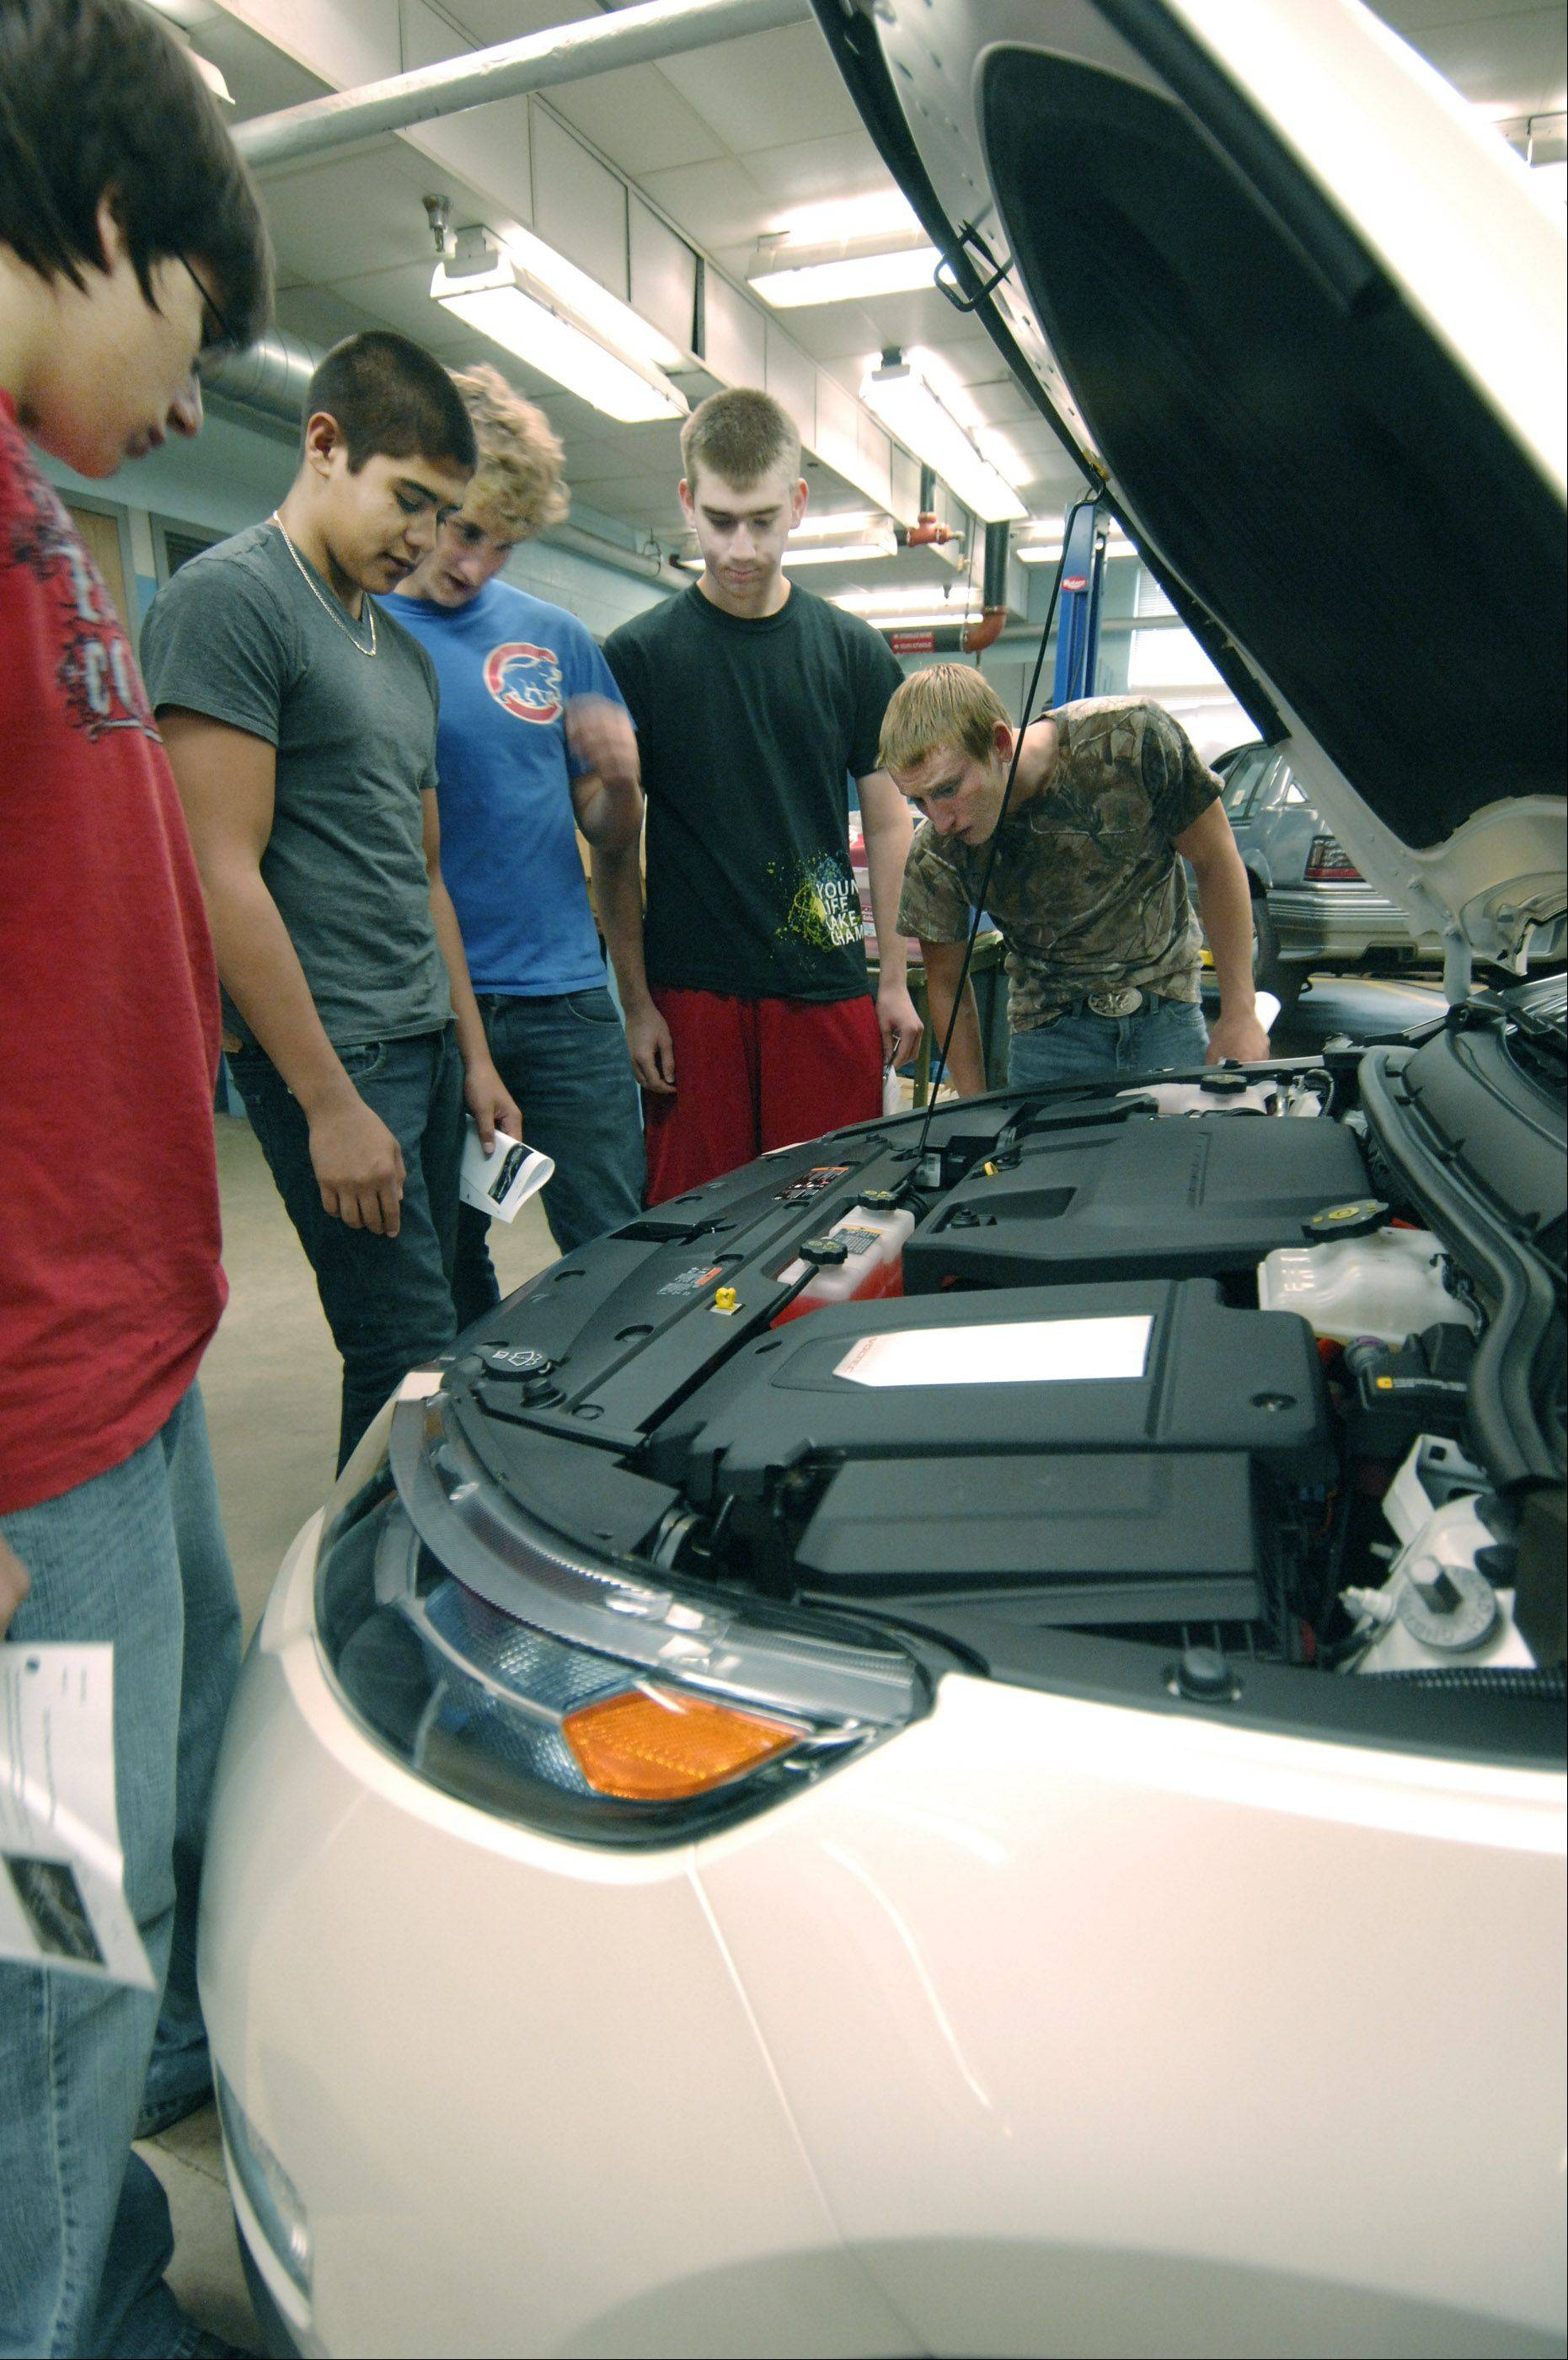 Electric car's appearance surprises Villa Park students